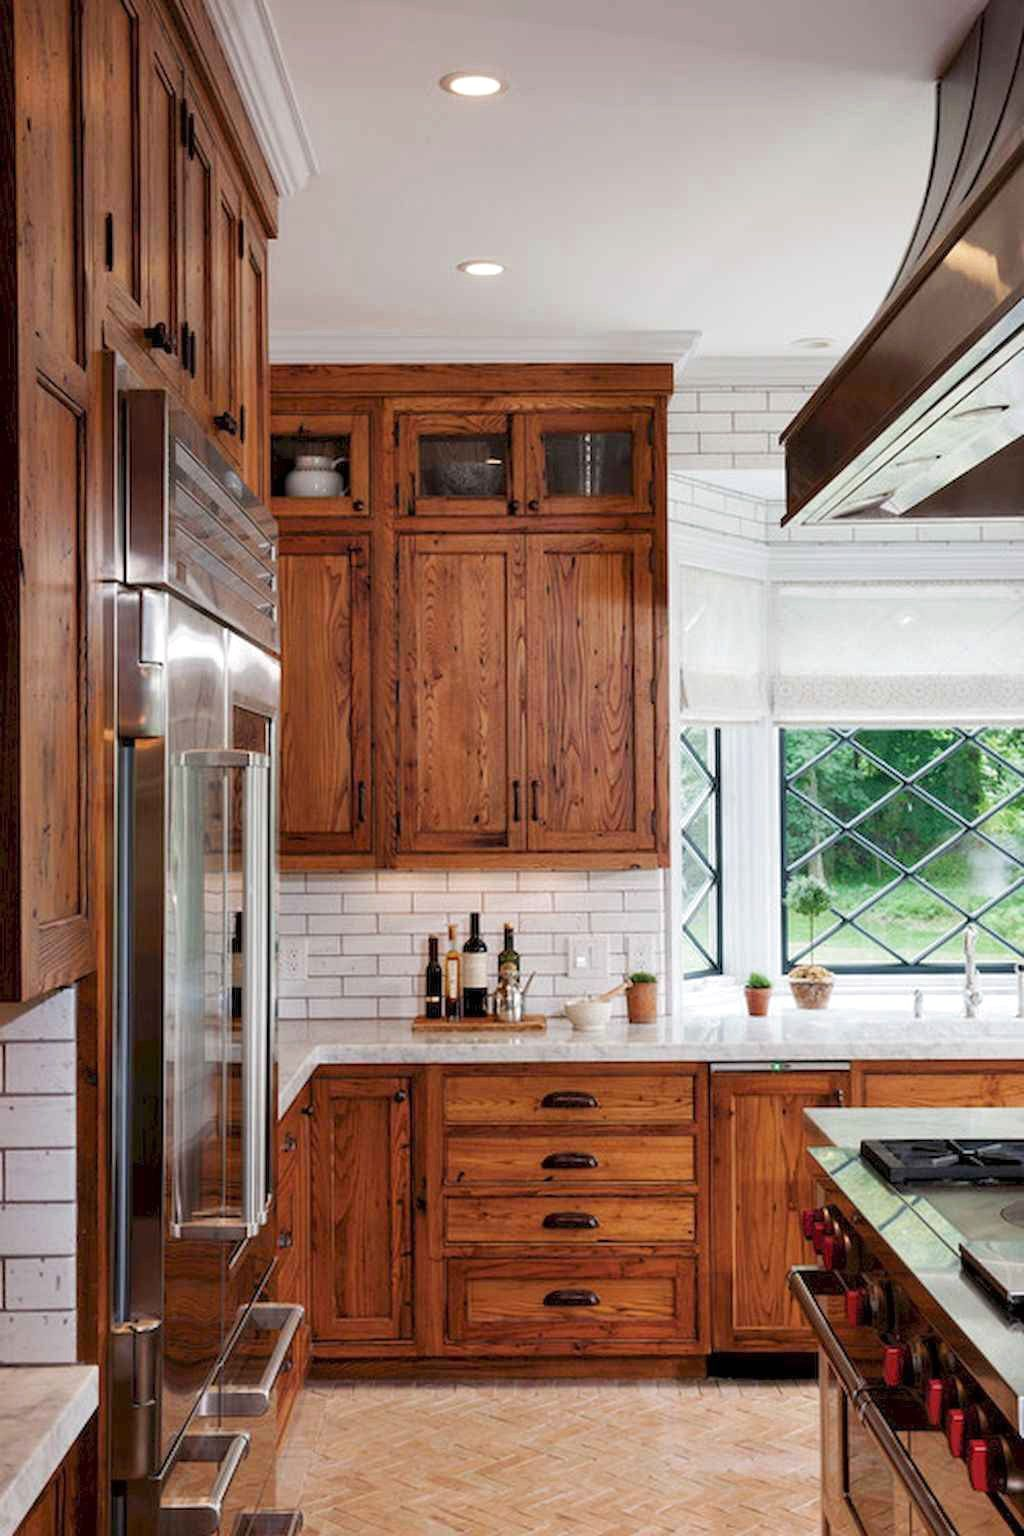 Favorite Farmhouse Kitchen Cabinet Design Ideas - EXP DECOR